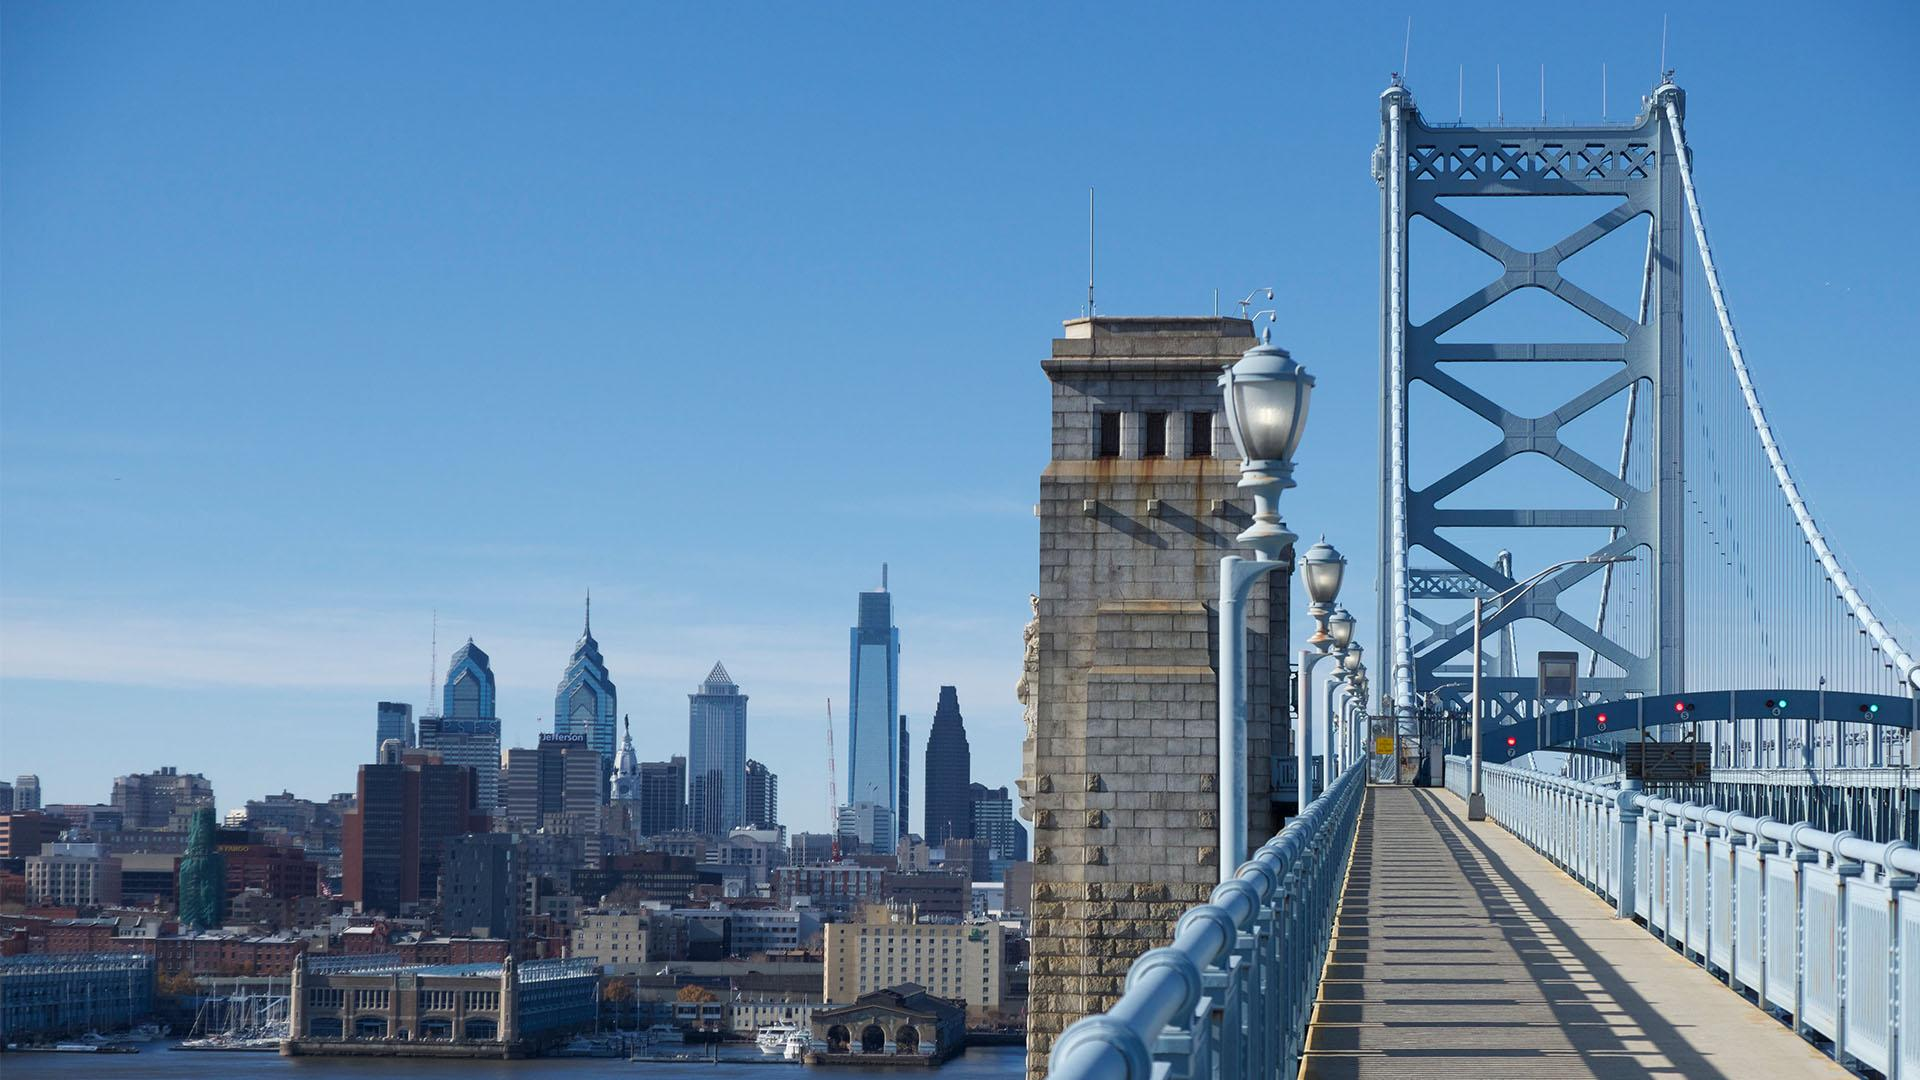 View of Philadelphia skyline from the Benjamin Franklin Bridge